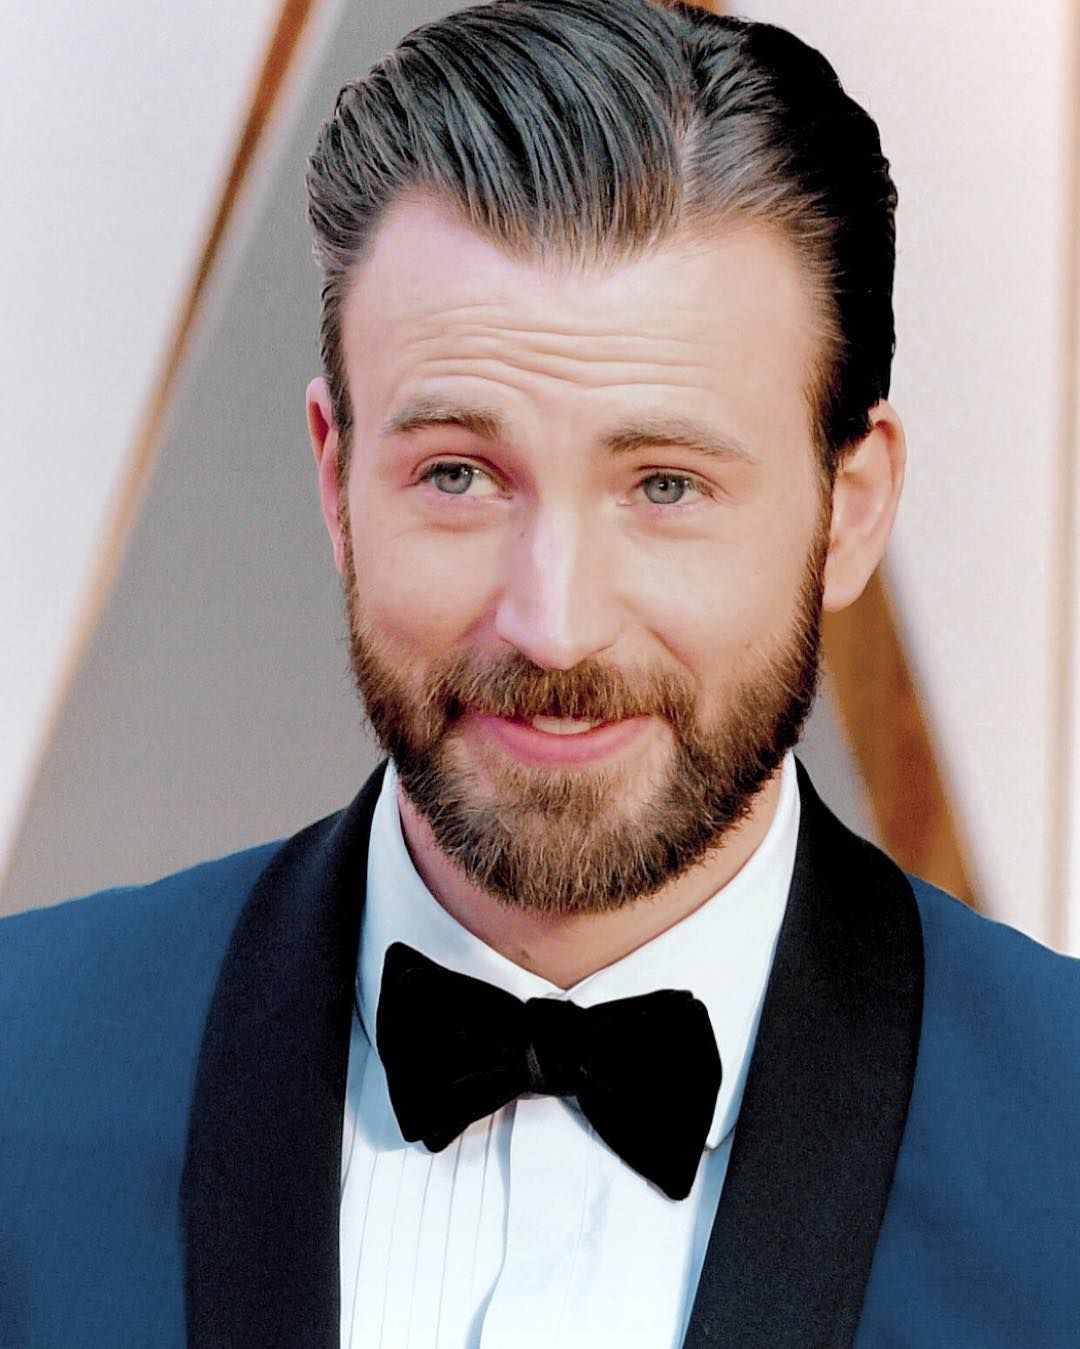 Chris evans arrives at the 89th academy awards on february